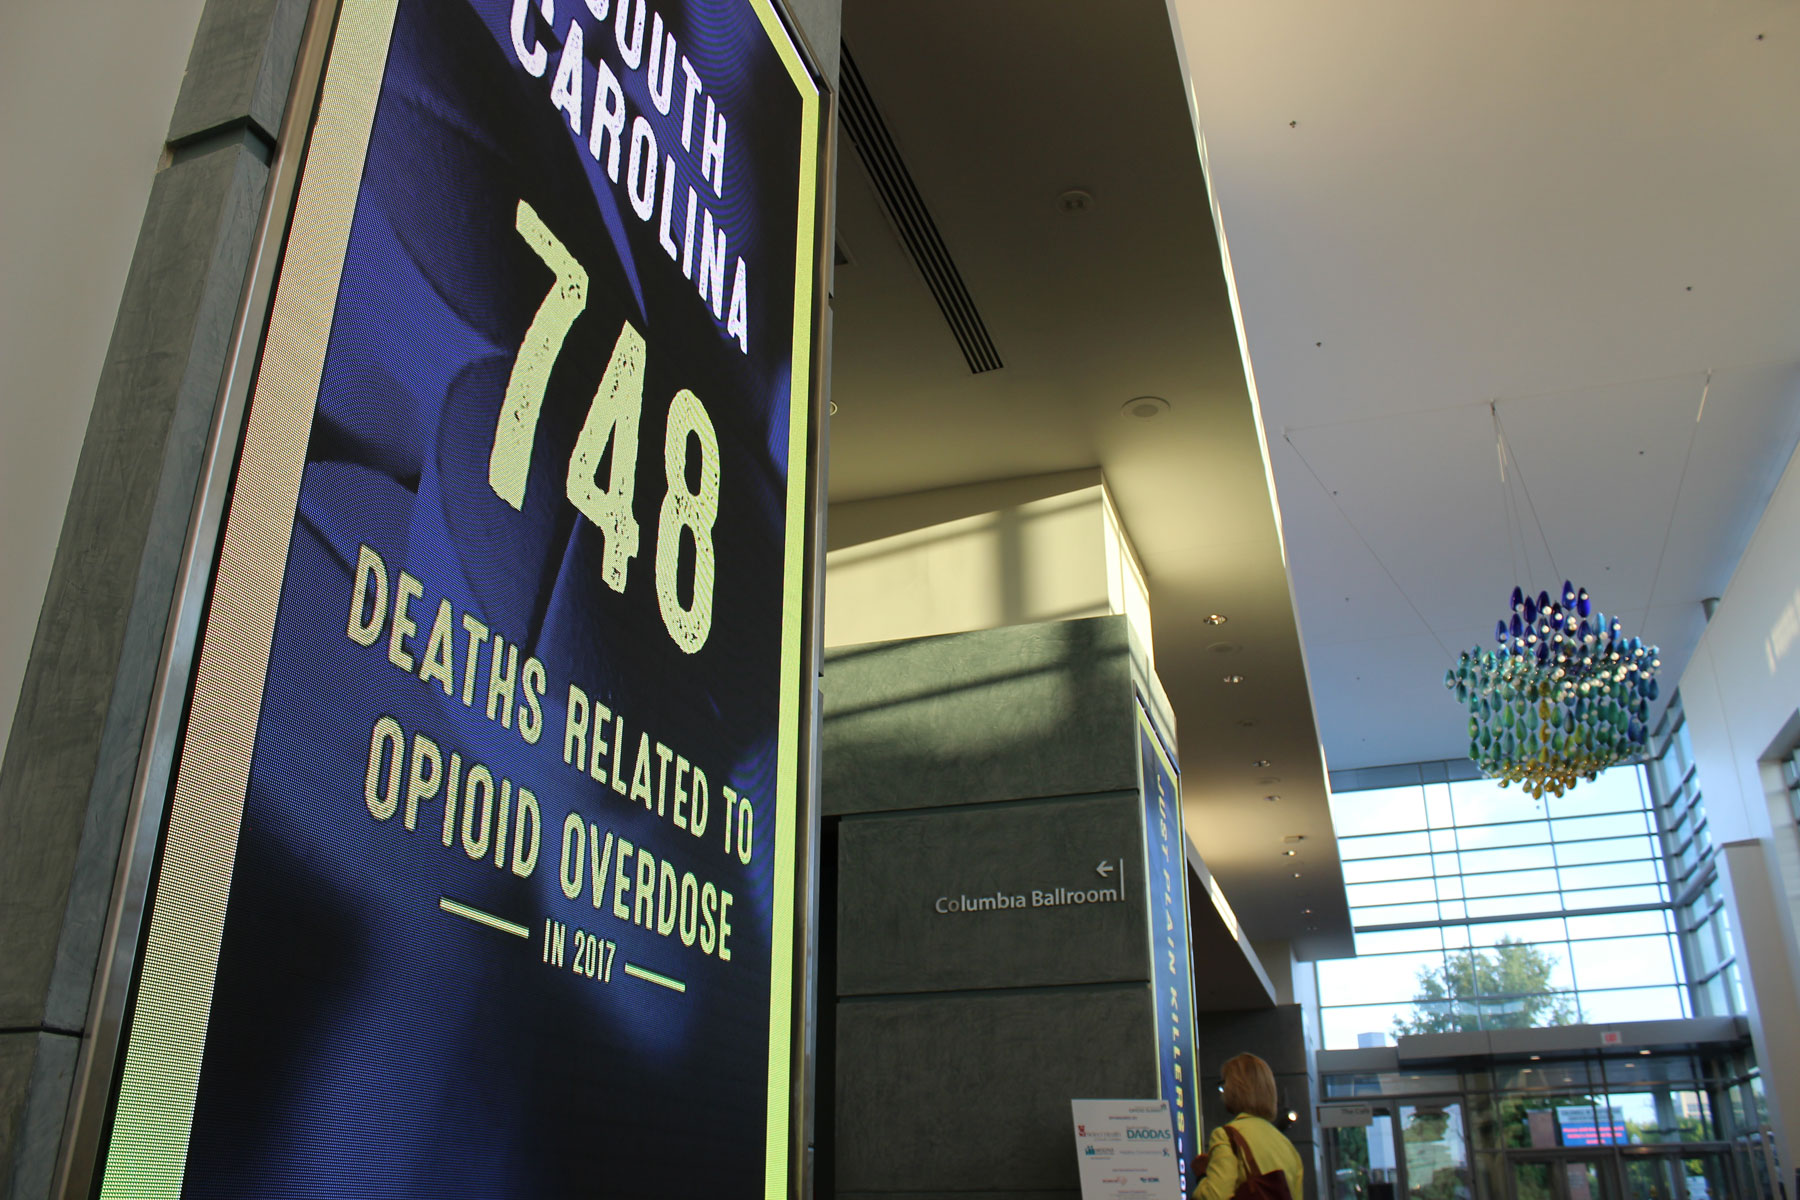 LED Signs showing the total number of SC opioid related deaths in 2017